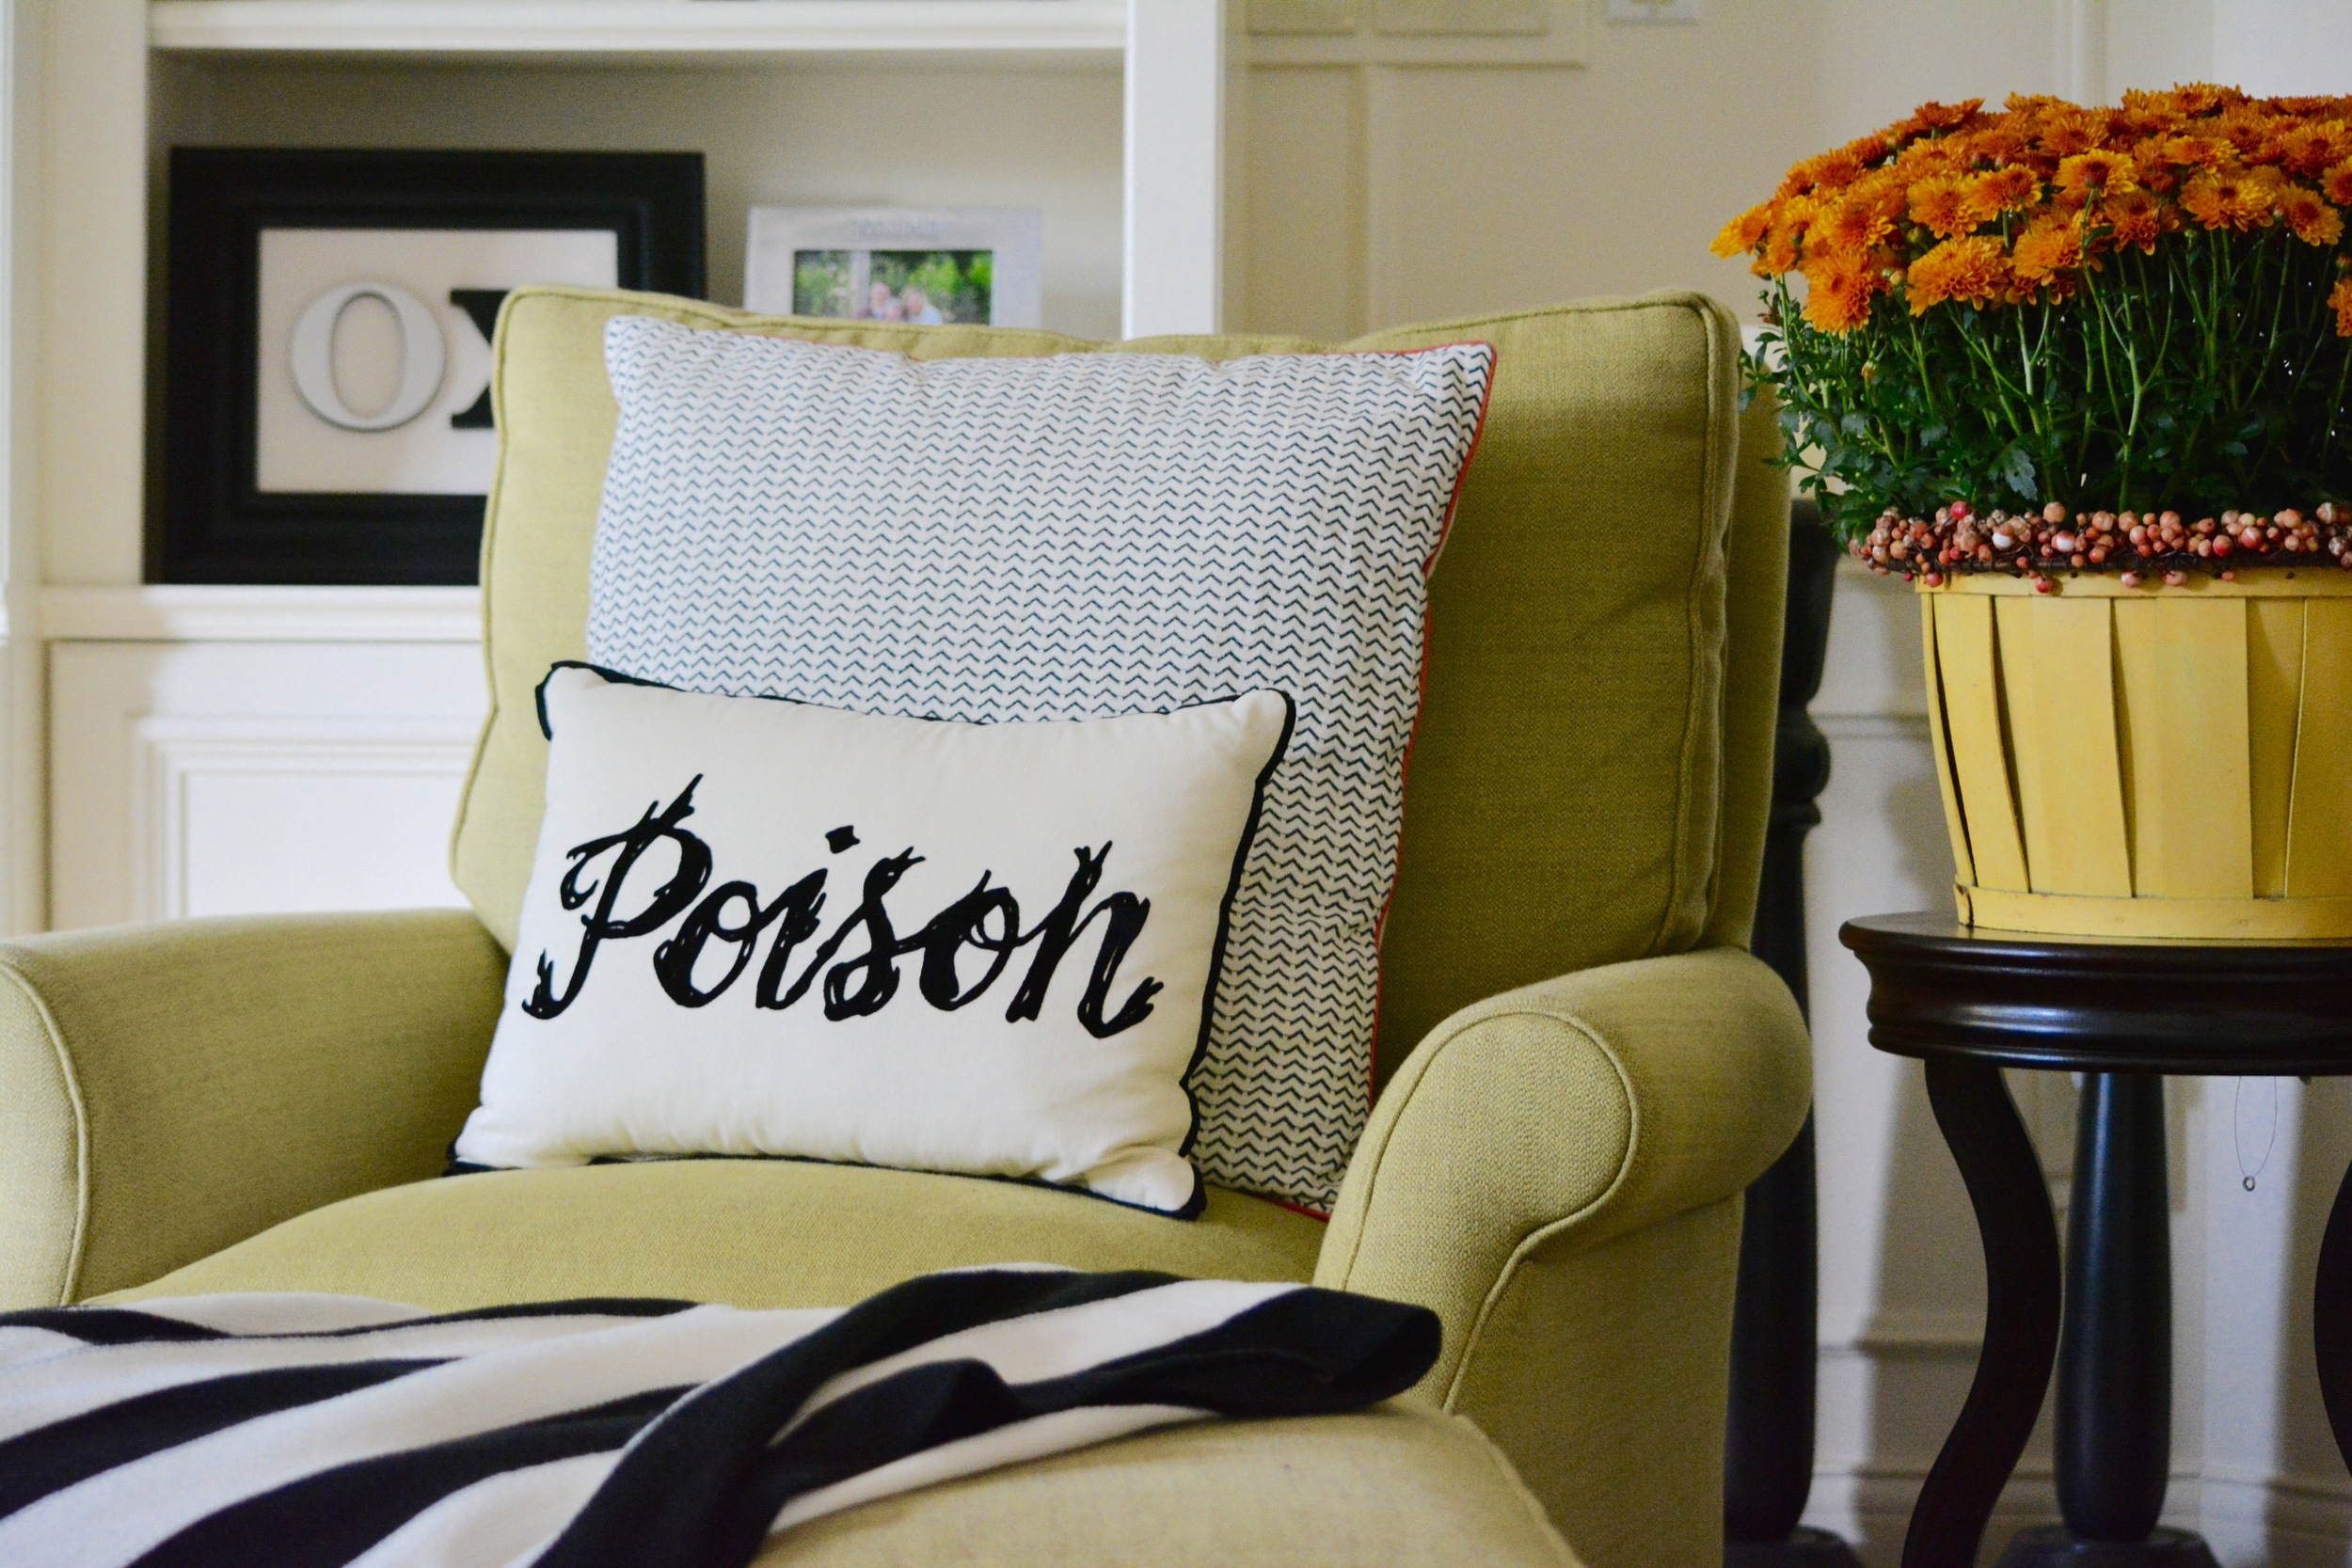 I think pillows can add such an impact, yet are so easy to switch out and are pretty affordable.  I found this poison one at Target (of course!) last year, and the cute black/orange one behind it is from Pottery Barn.